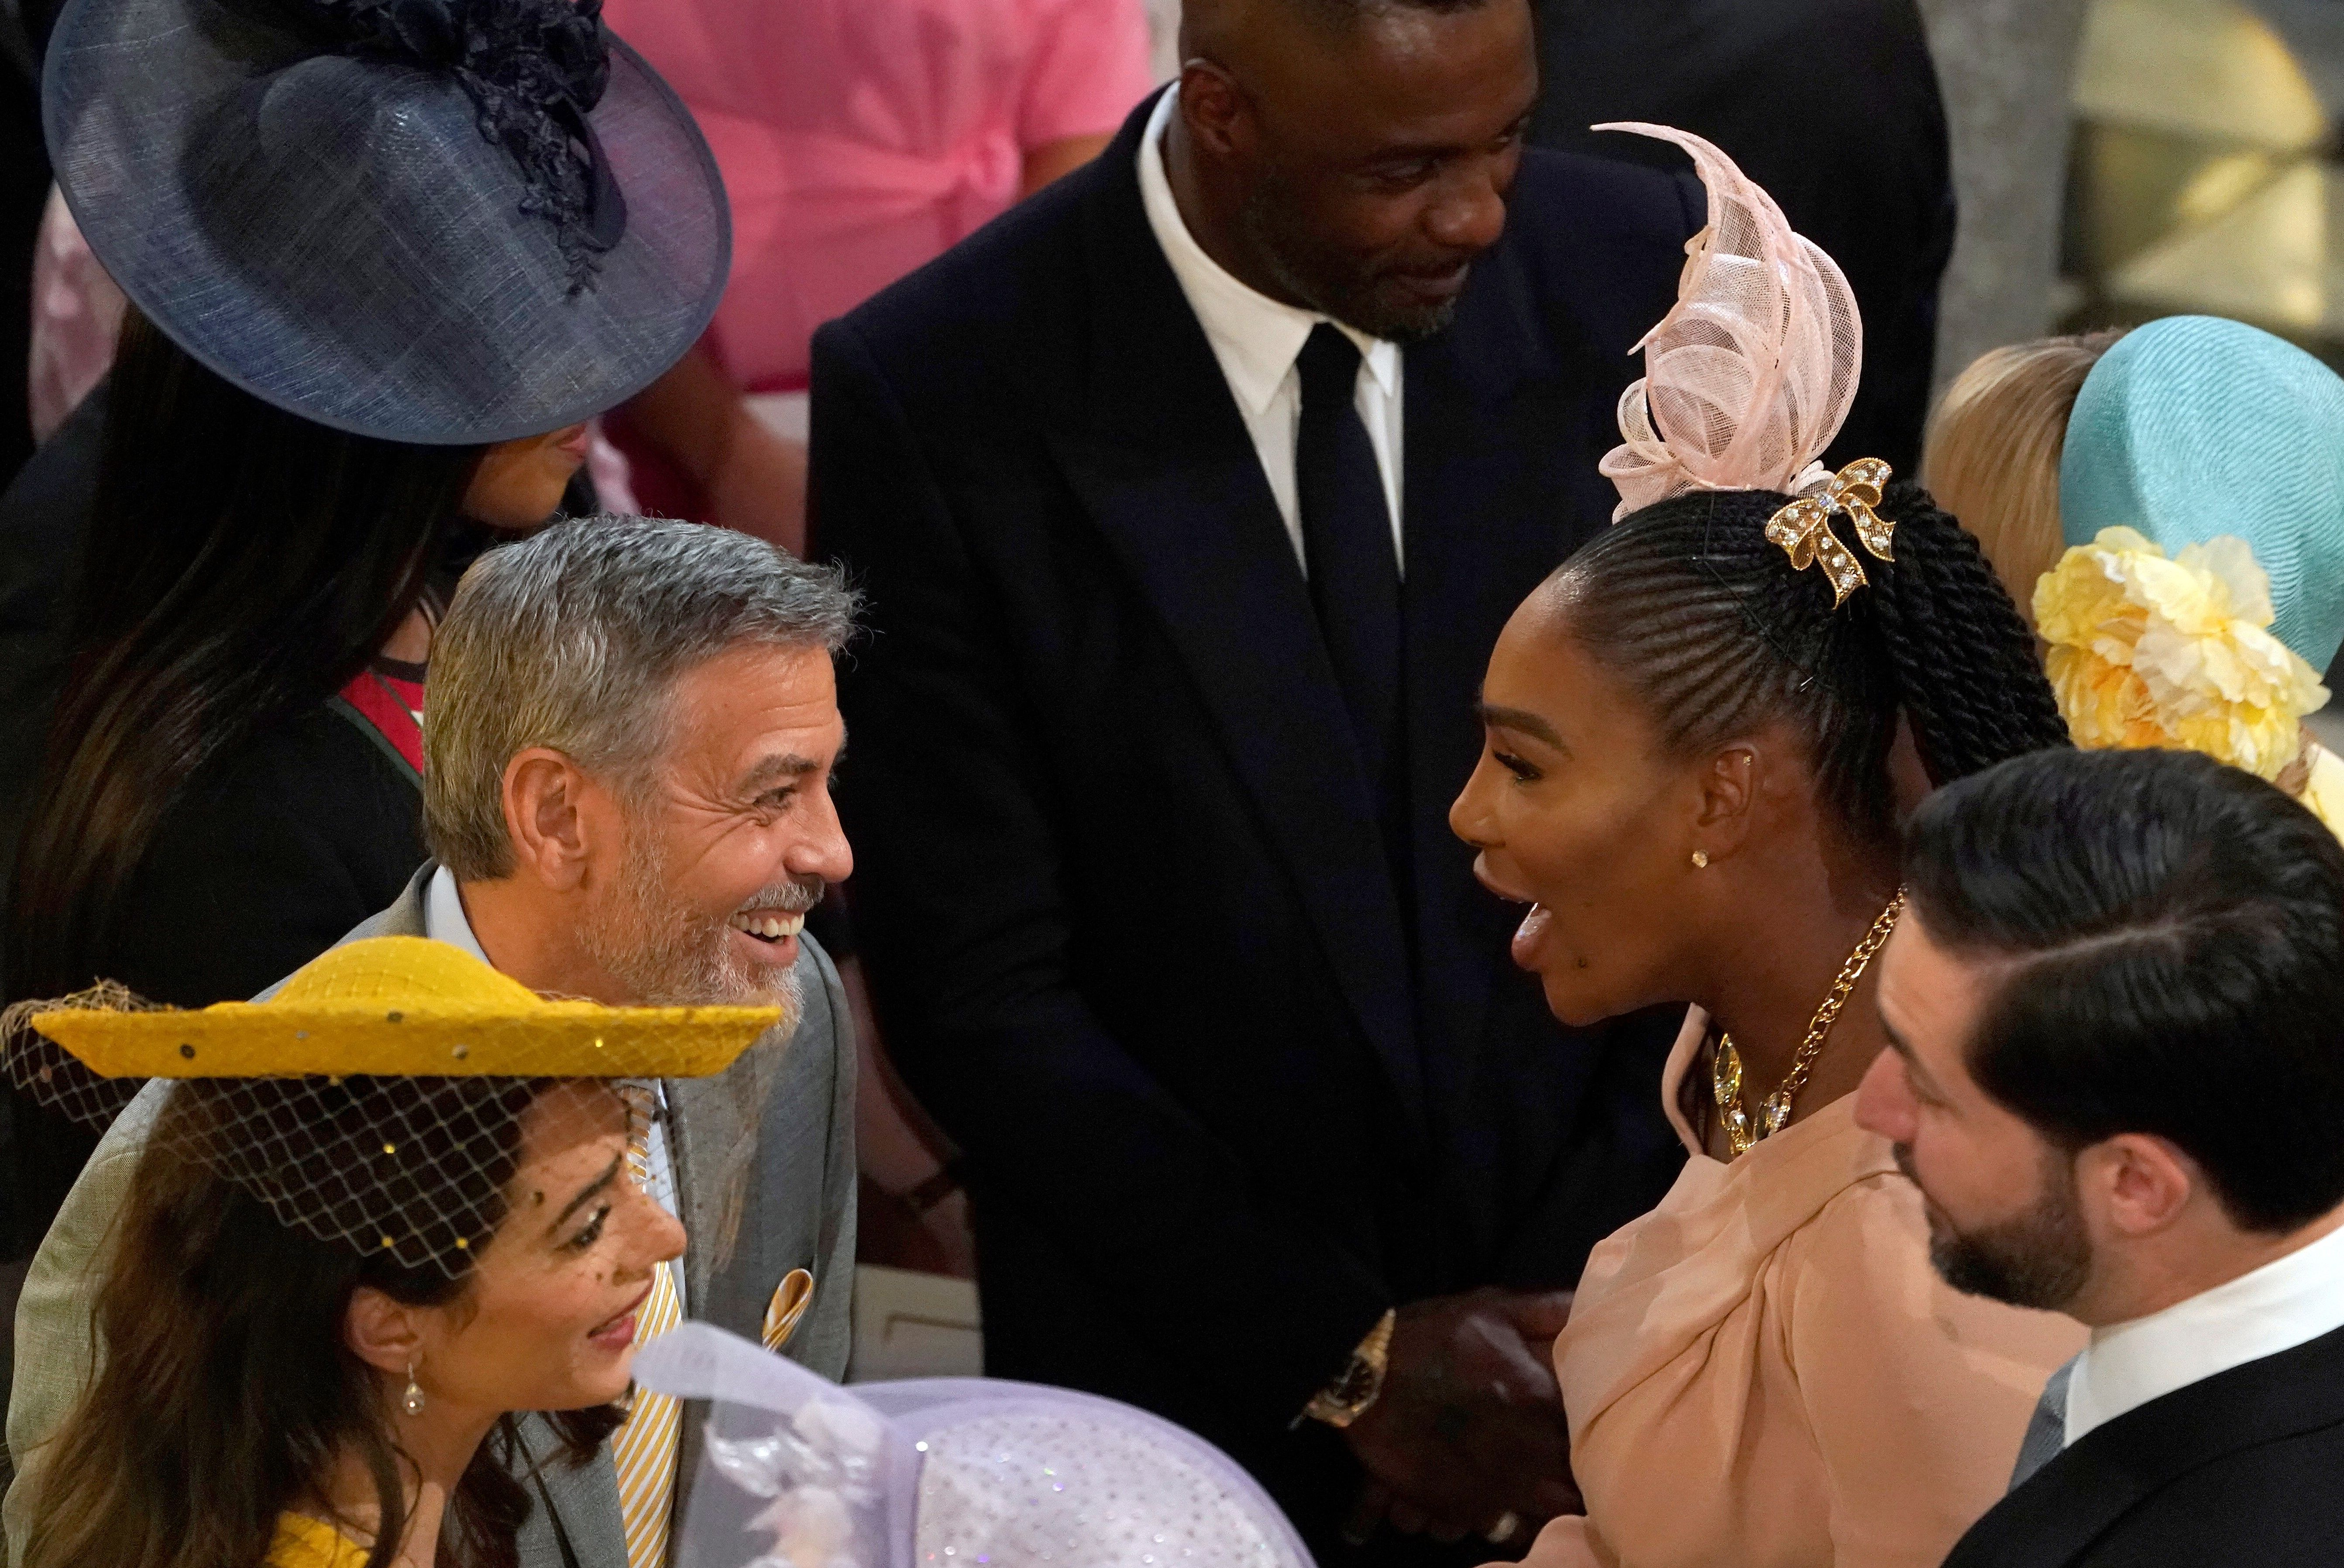 You might expect the marriage between a prince and a respected actress to be an A-list event, but the guests really pulled out the stops for the big day. George and Amal Clooney , Serena Williams and her husband Alexis Ohanian, and Idris Elba and his fiancee Sabrina Dhowre all turned up in their most gorgeous spring wedding fare ( and fascinators, of course .)